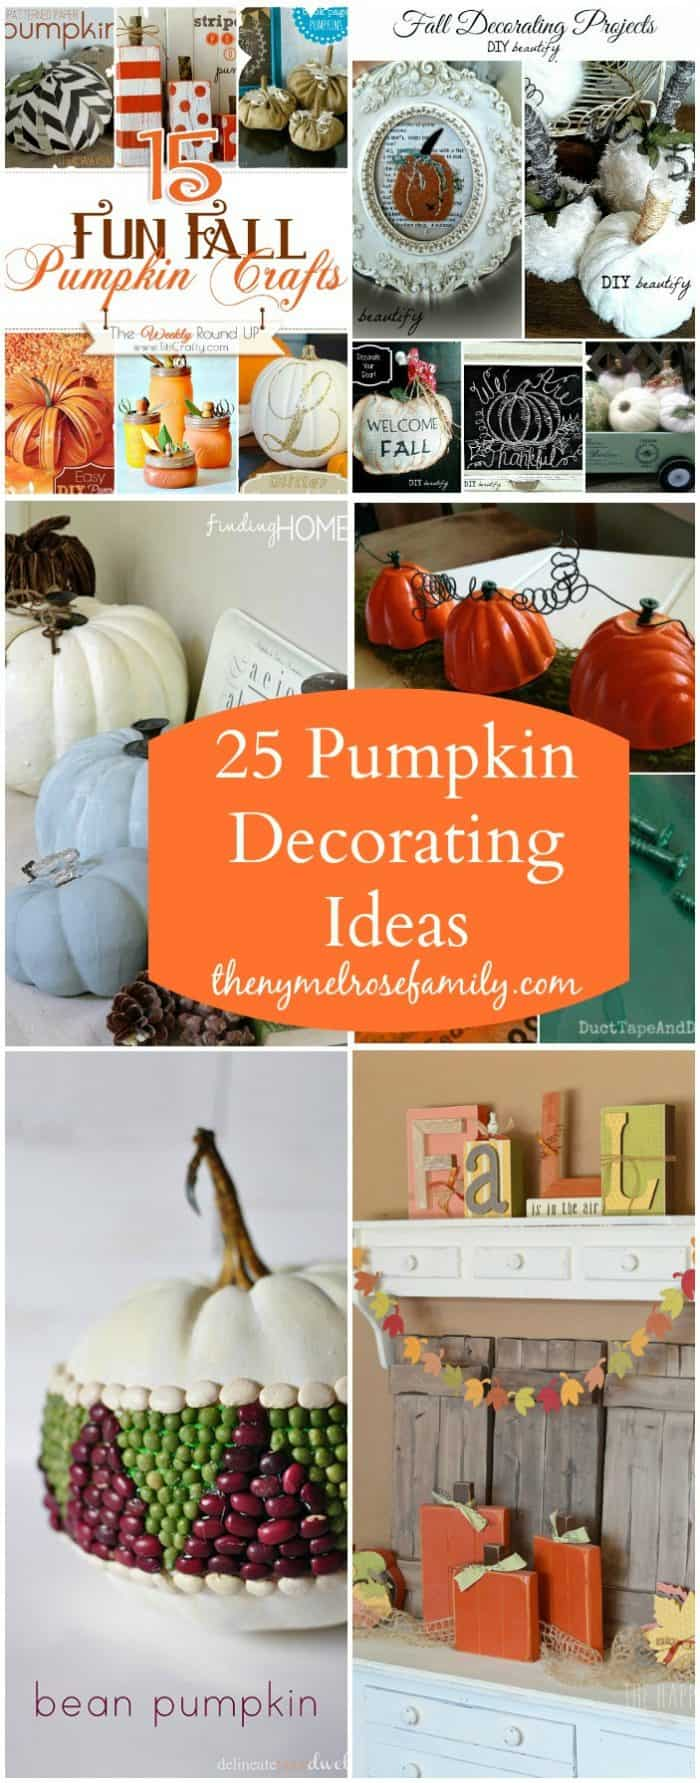 25-pumpkin-decorating-ideas-collected-by-the-ny-melrose-family